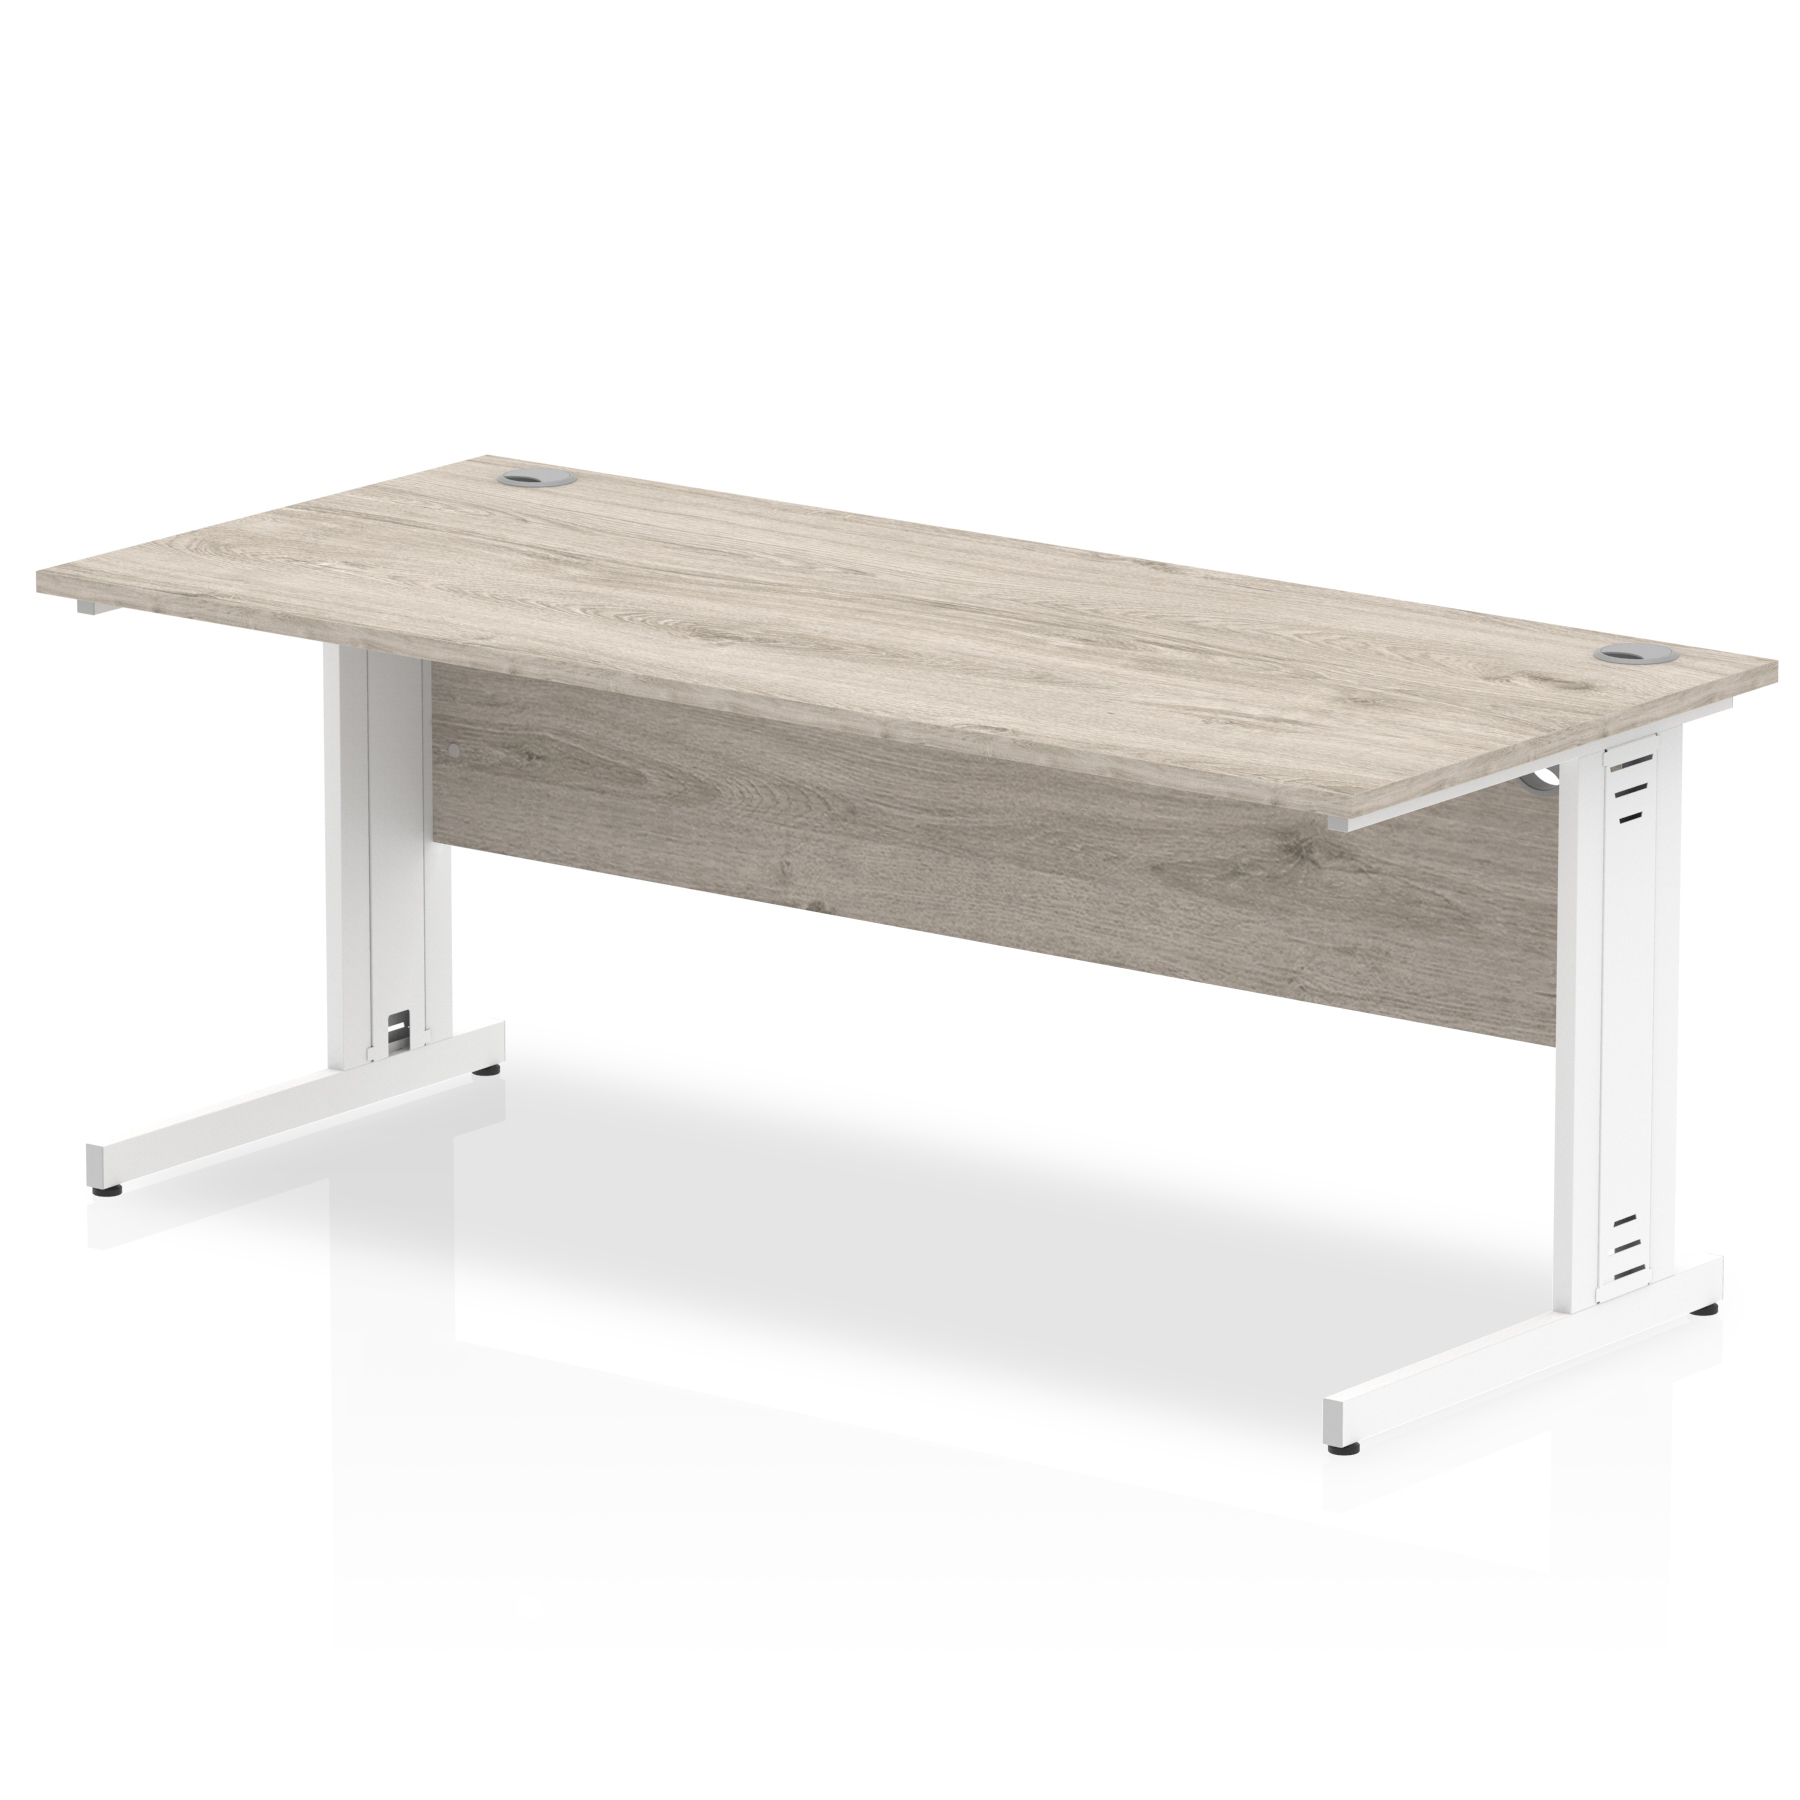 Trexus Rectangular Desk White Cable Managed Leg 1600x800mm Grey Oak Ref I003109